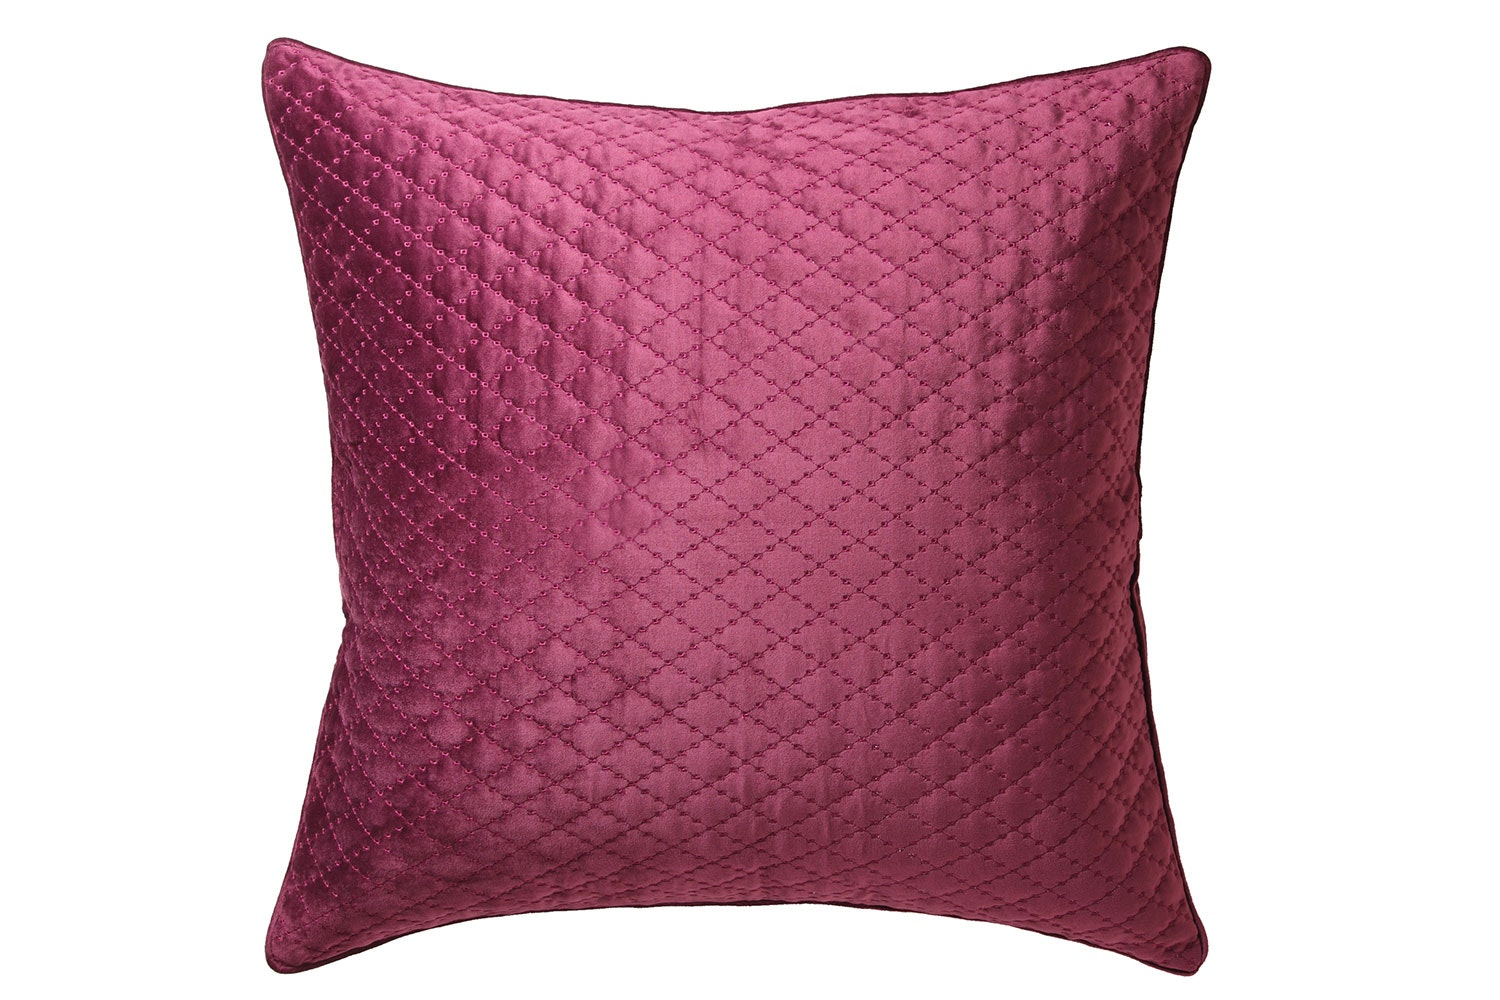 Antique Lattice Accessory Range by Florence Broadhurst - Plum European Pillowcase